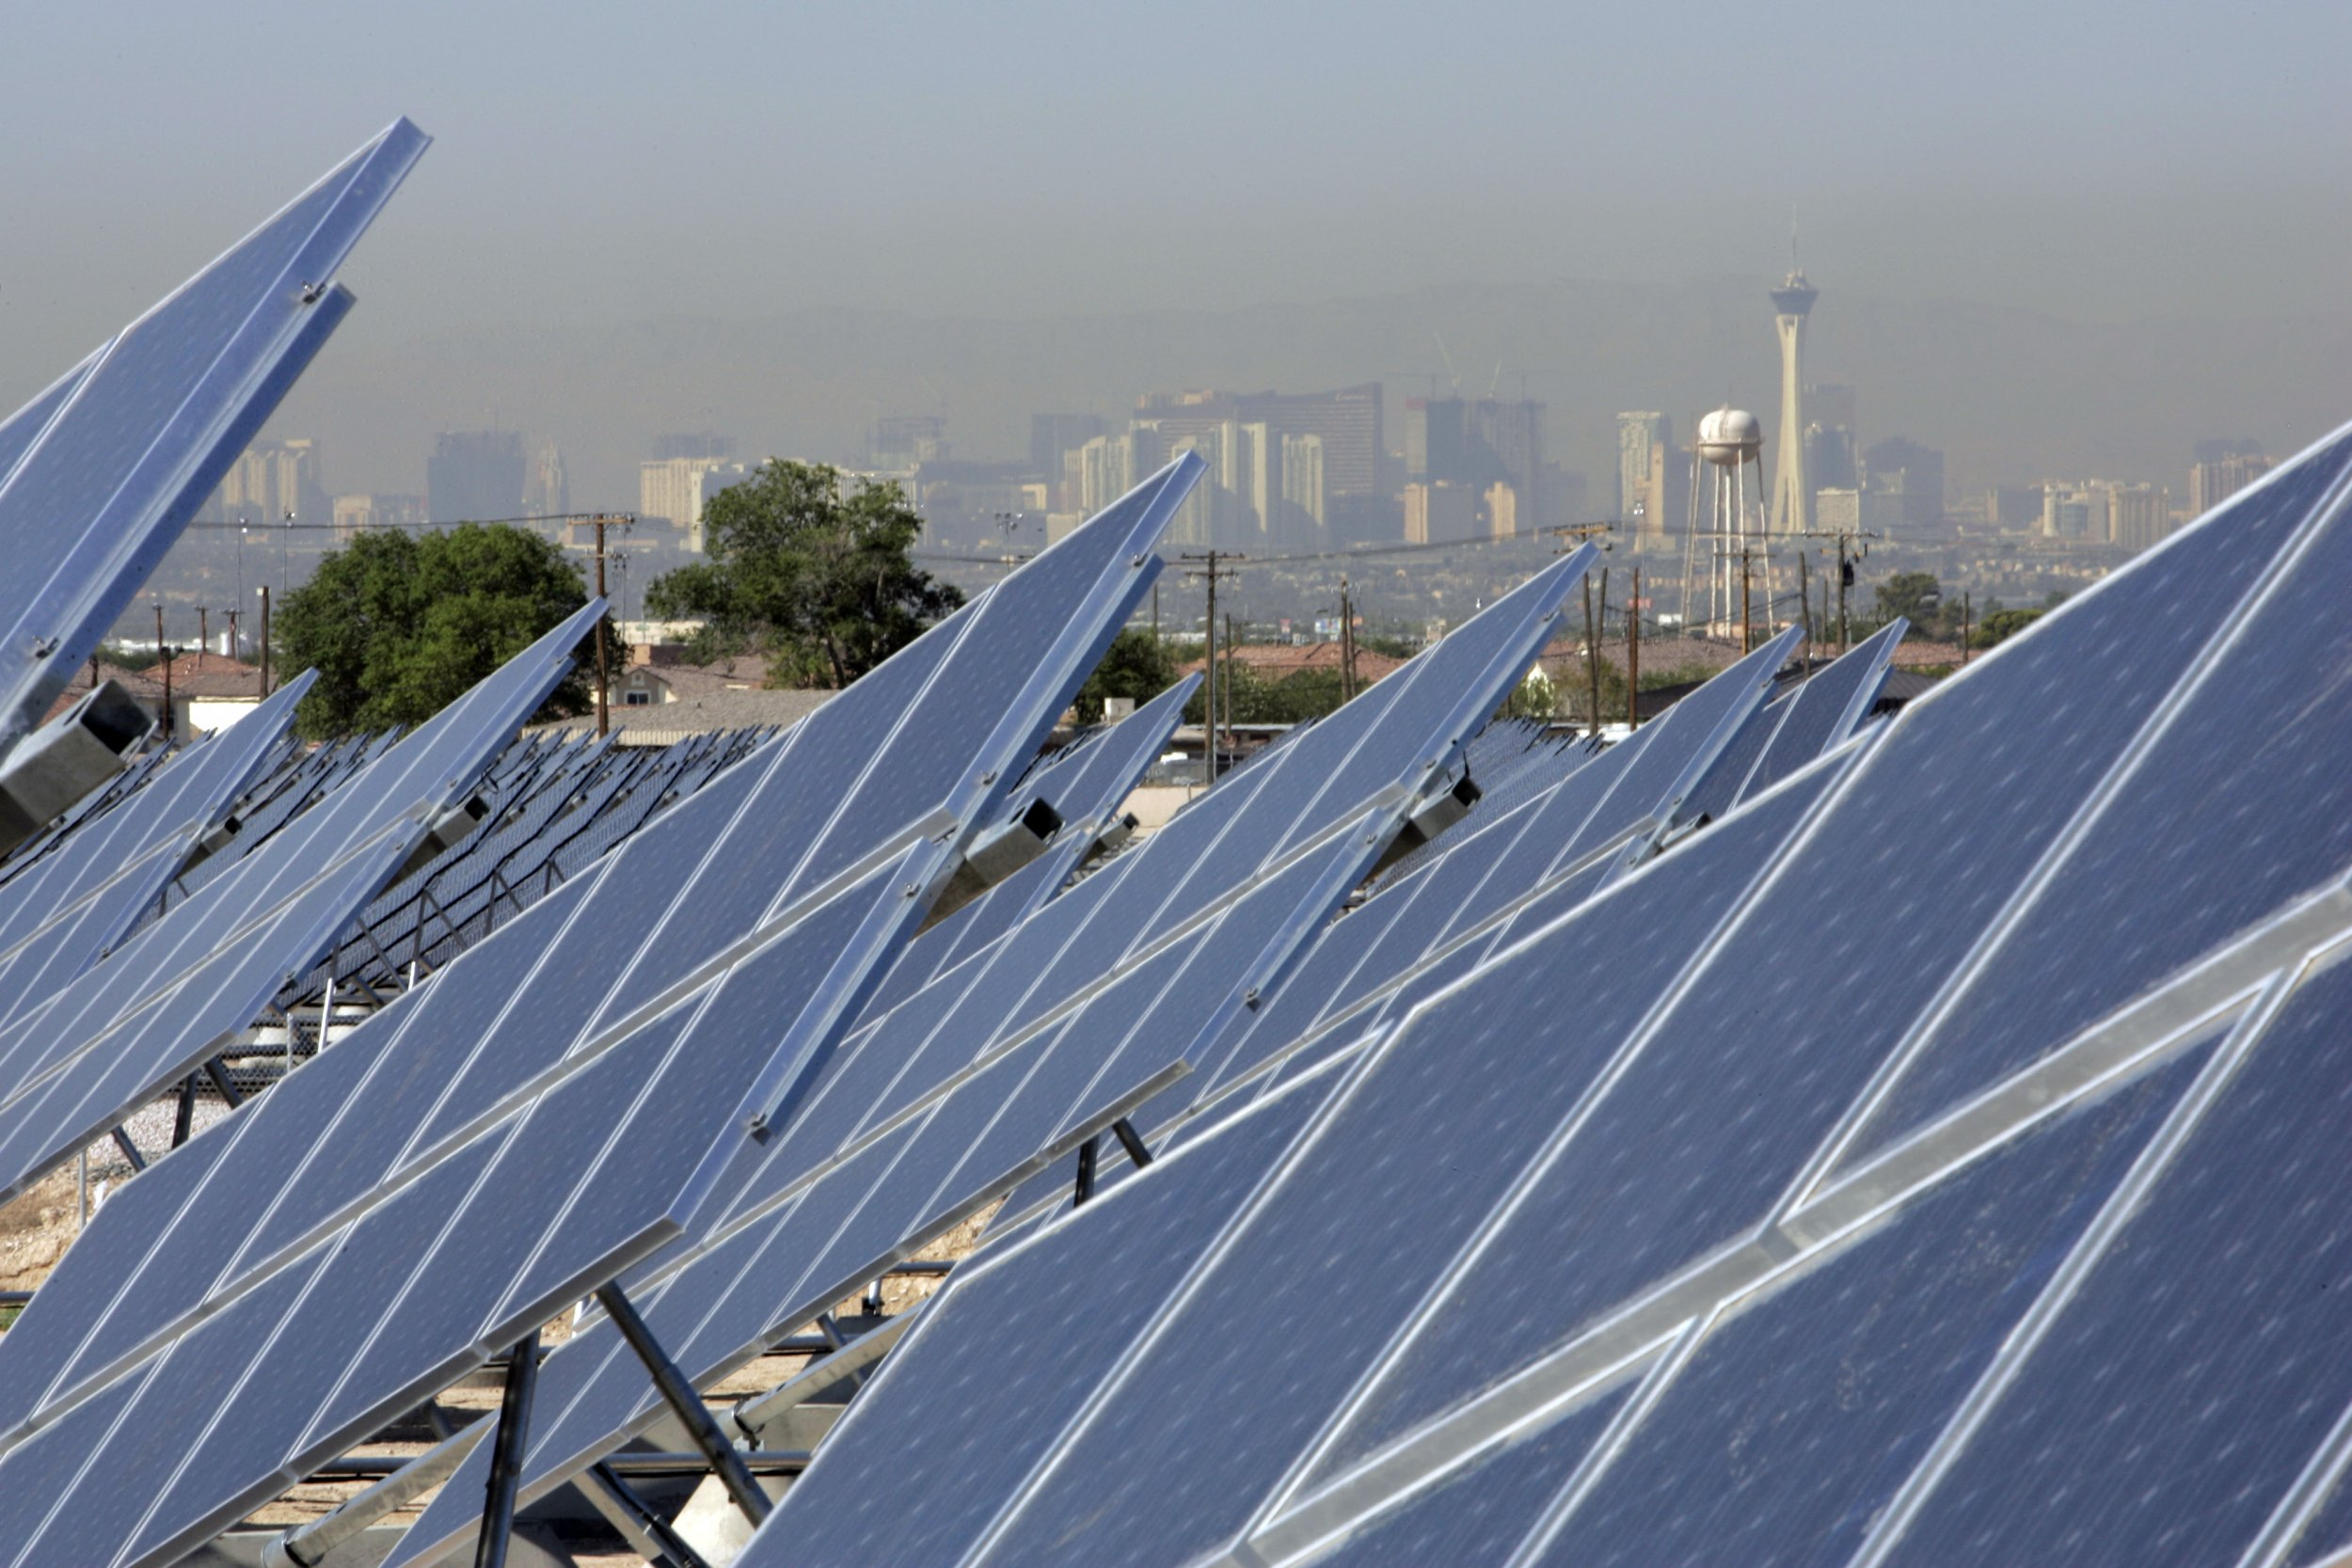 Las Vegas Casinos Want To Use More Renewable Energy But